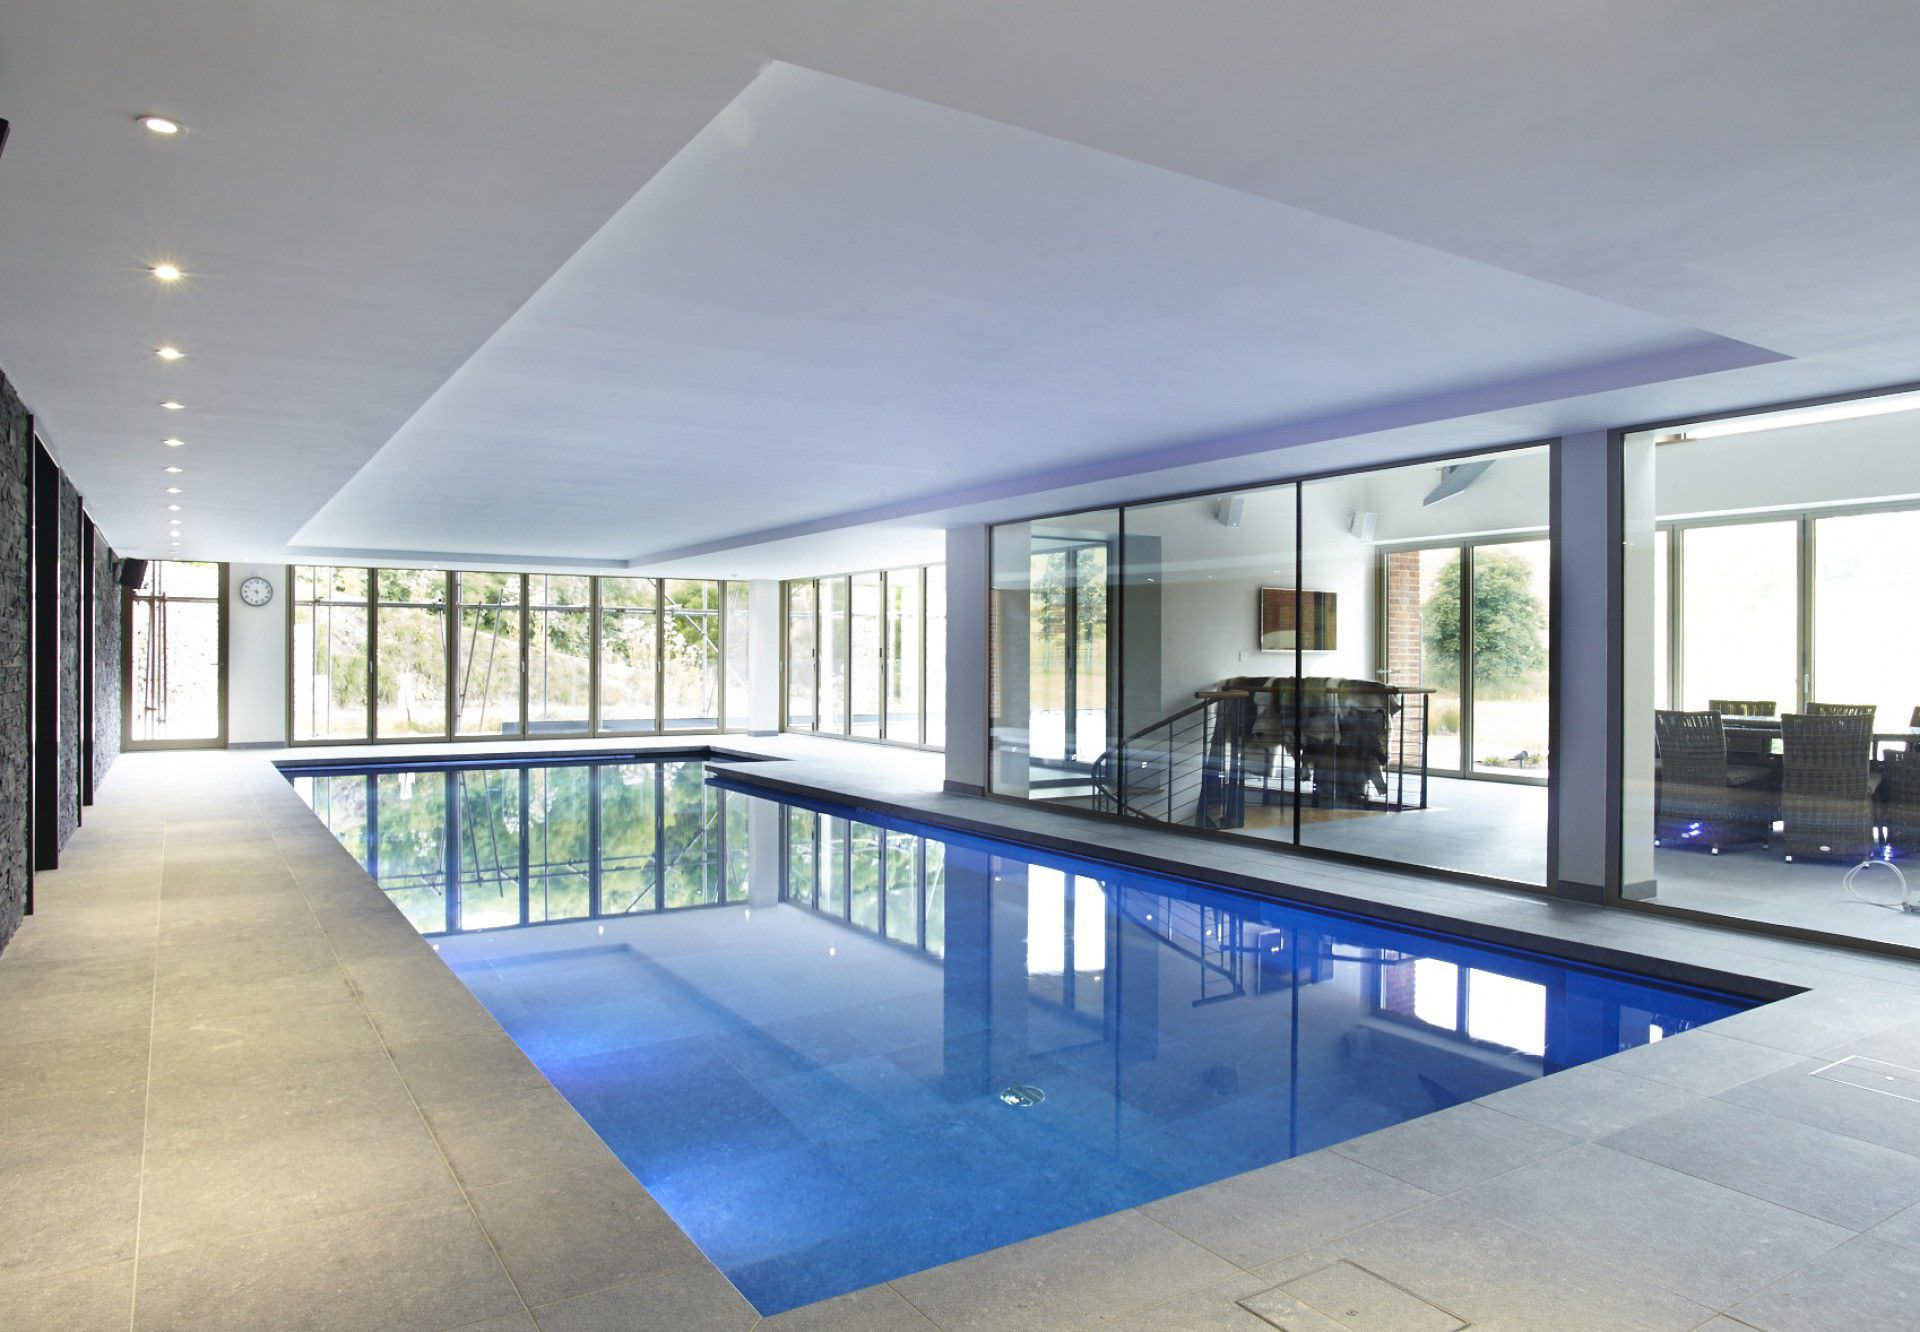 Private indoor pool  Erdverlegtes Schwimmbecken / Keramik / Innenraum - BUCKINGHAMSHIRE ...